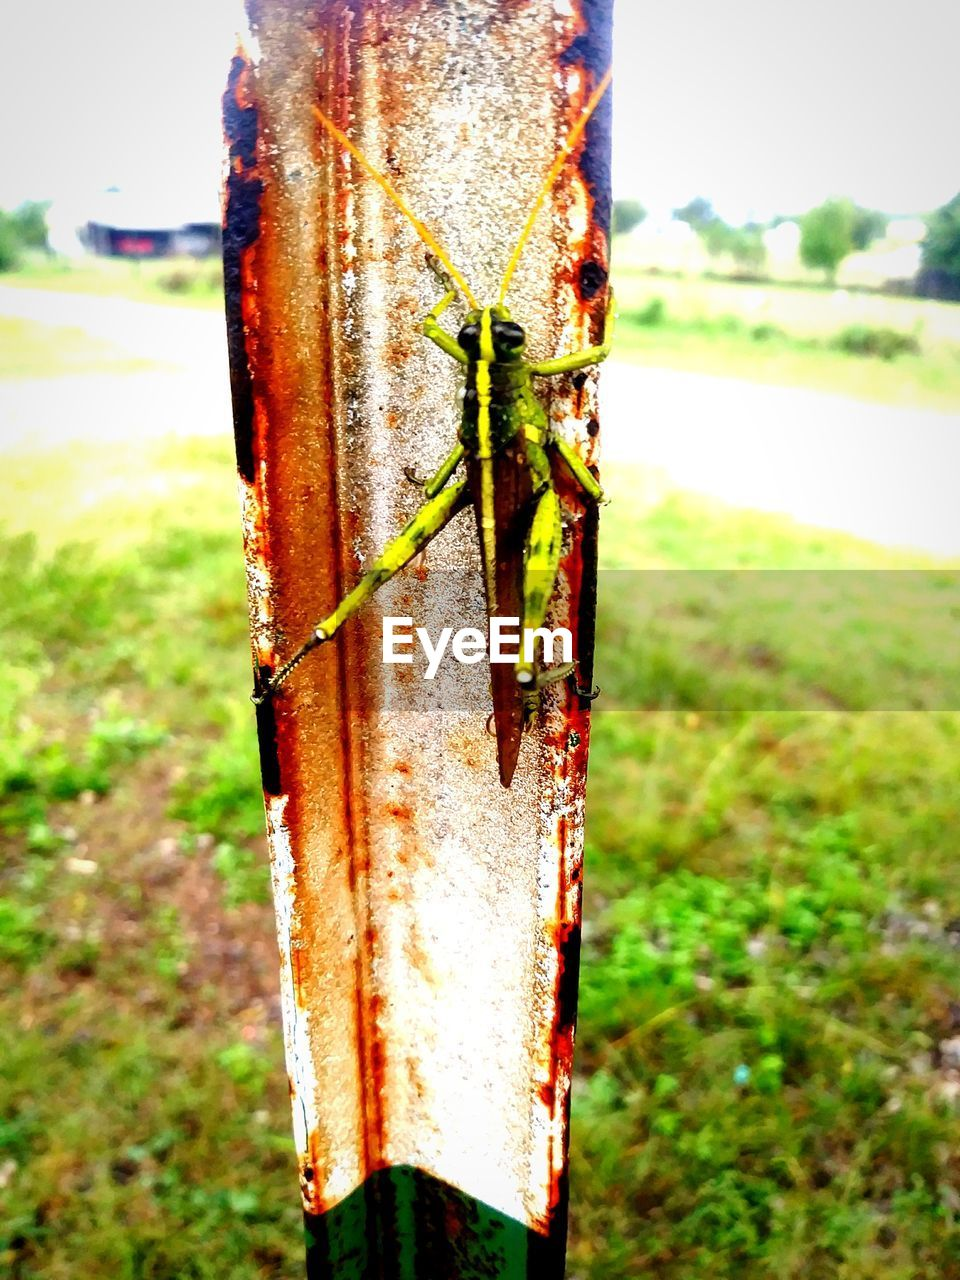 focus on foreground, close-up, nature, day, no people, plant, field, outdoors, land, rusty, tree trunk, green color, tree, growth, trunk, grass, metal, animal, post, animal themes, wooden post